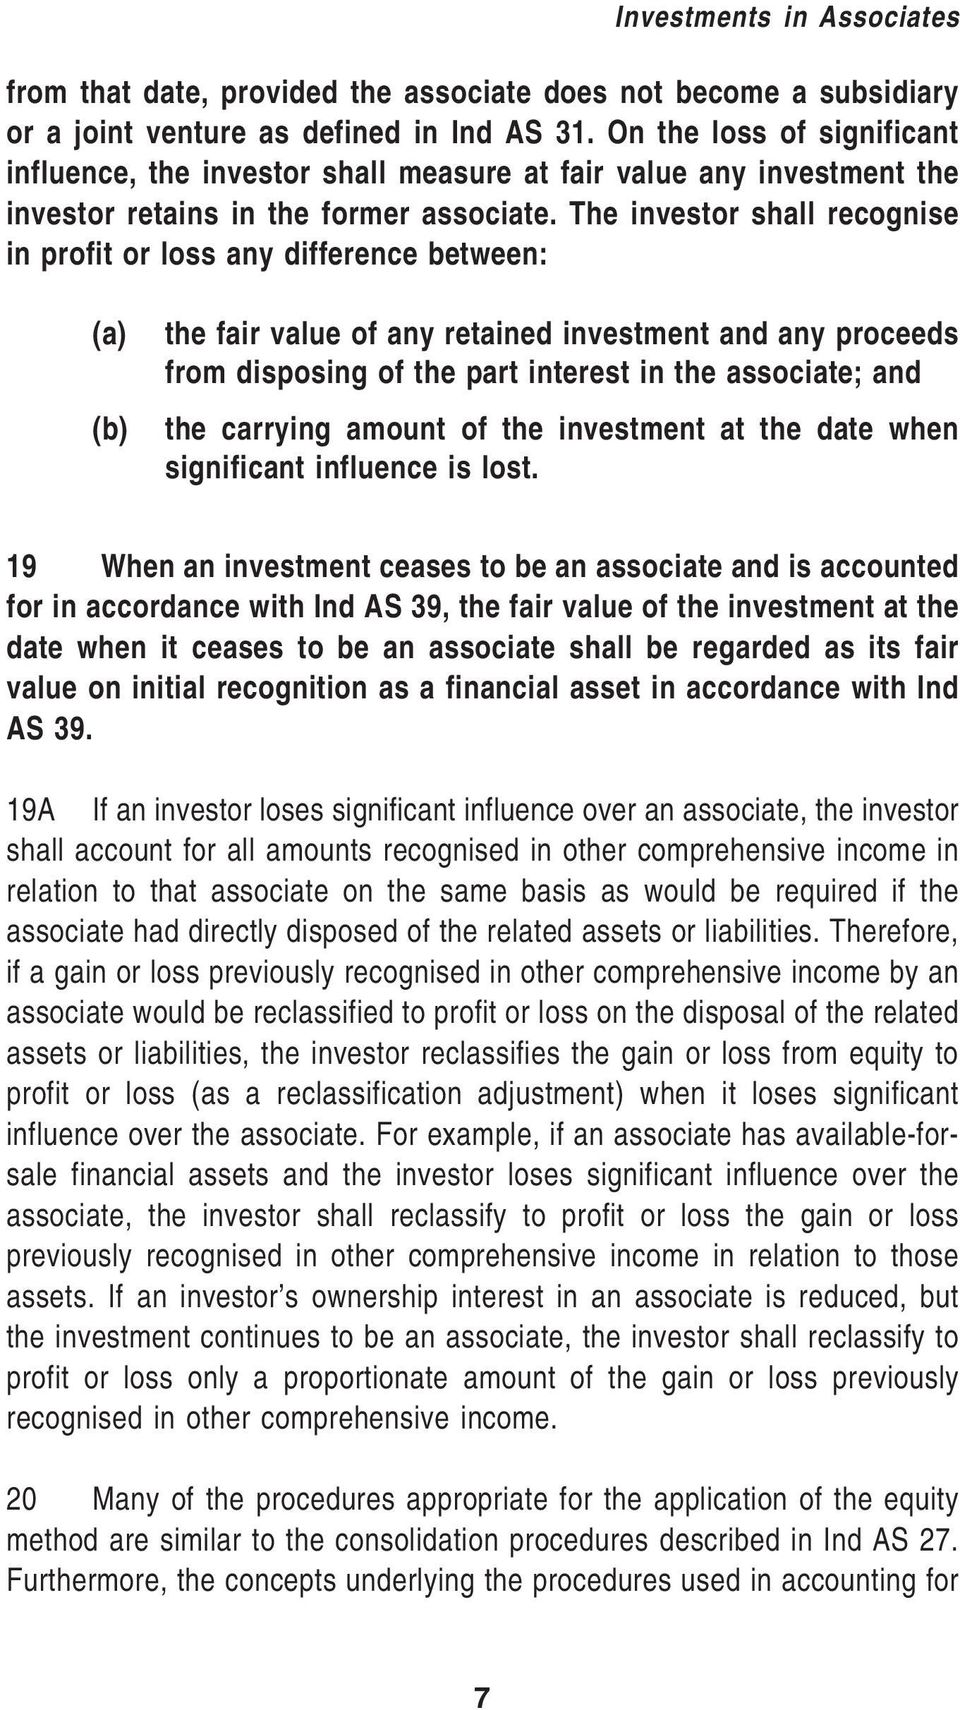 The investor shall recognise in profit or loss any difference between: (a) (b) the fair value of any retained investment and any proceeds from disposing of the part interest in the associate; and the